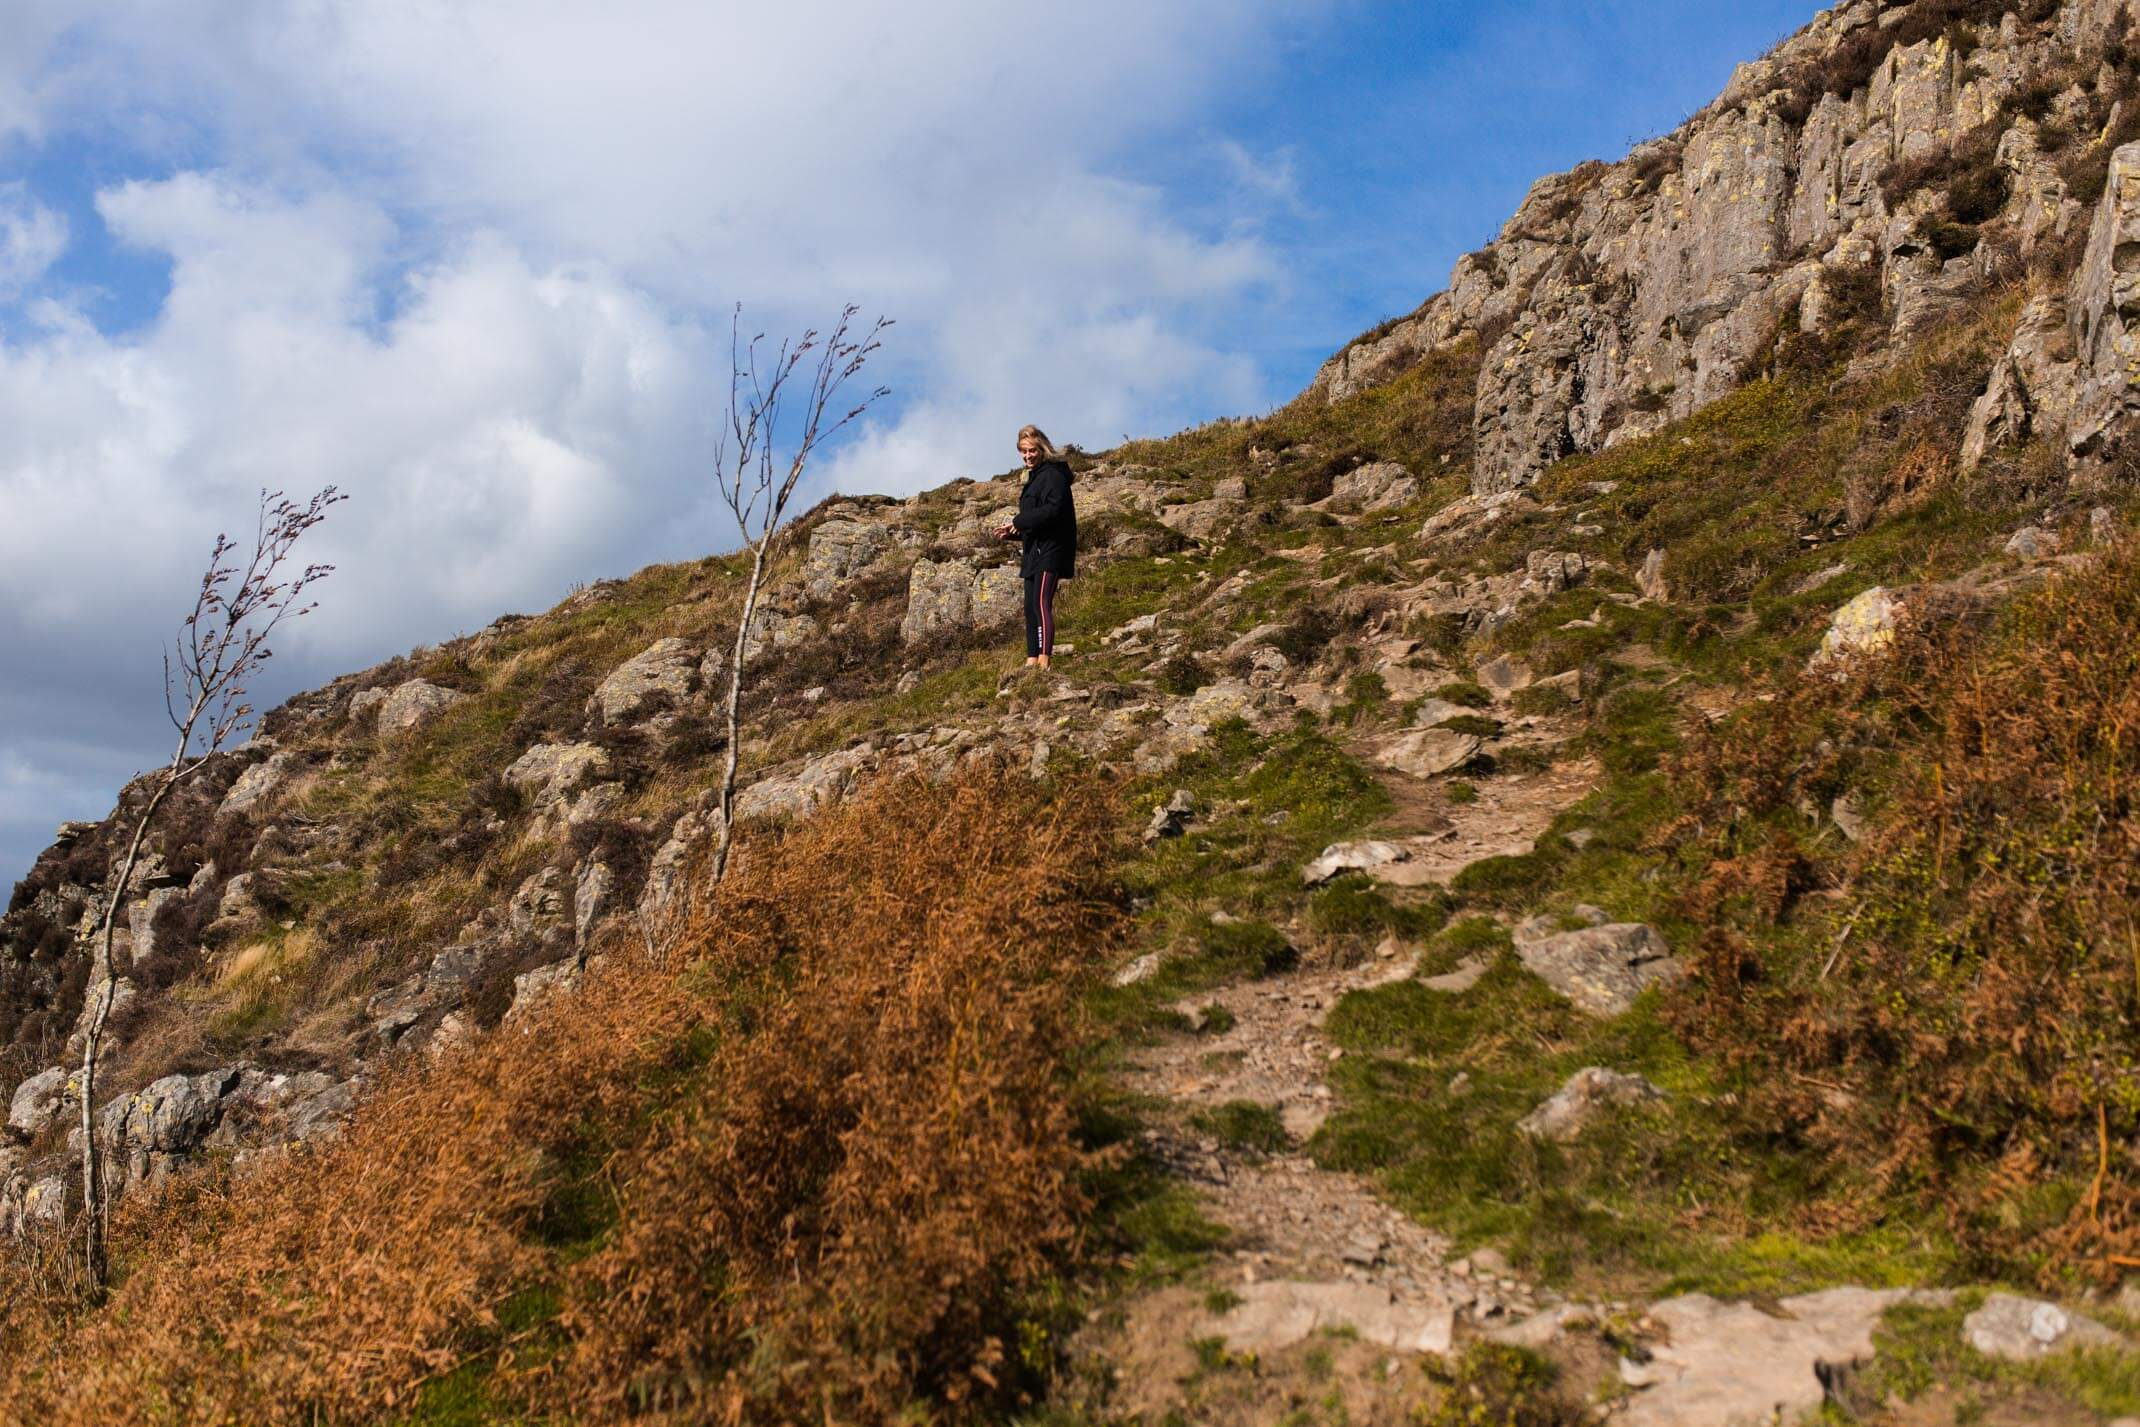 A 3-day adventure in the Lake District